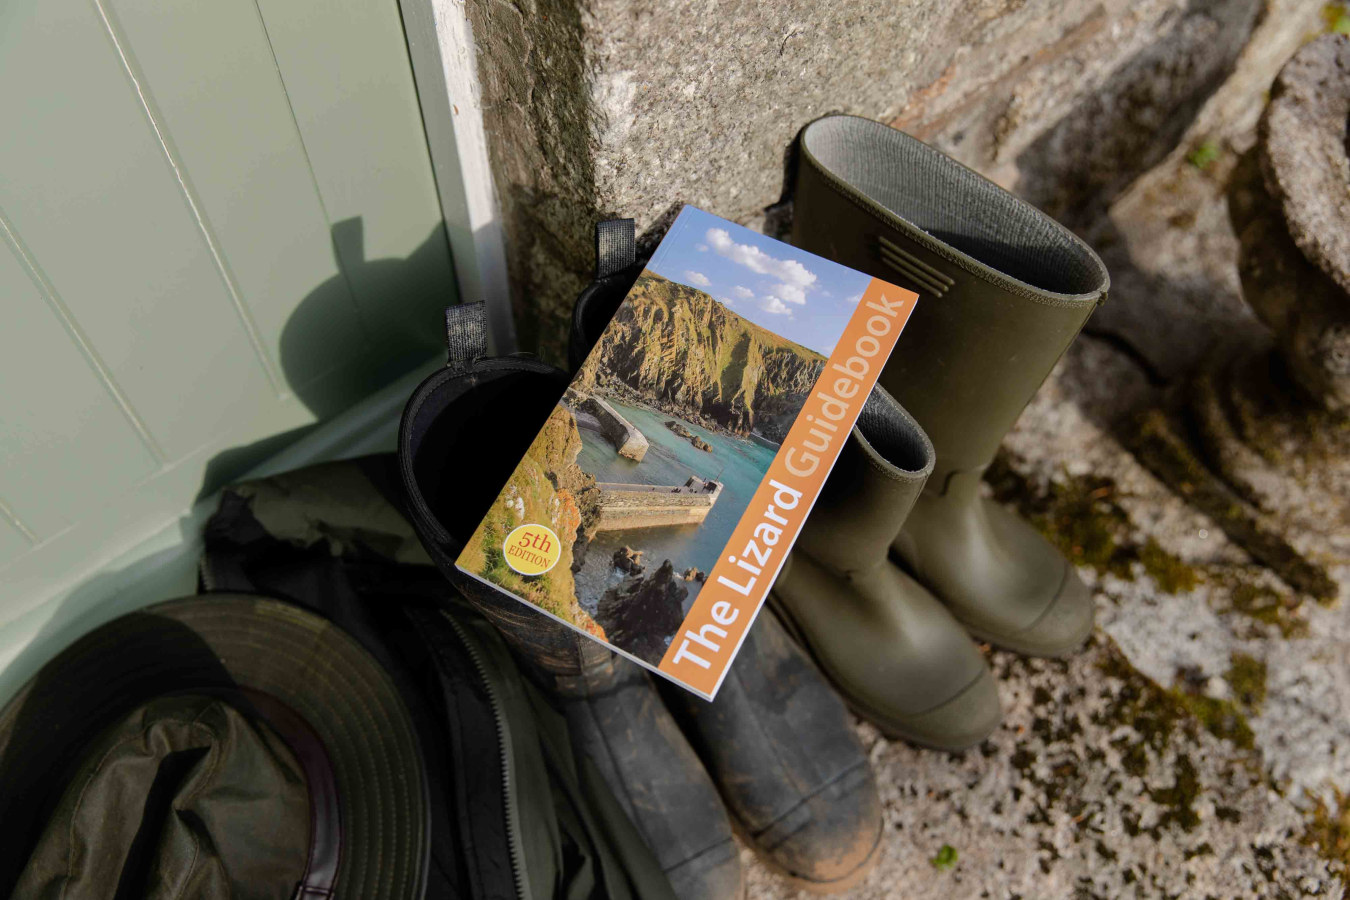 Friendly Guide Book resting on Wellngton Boots outside